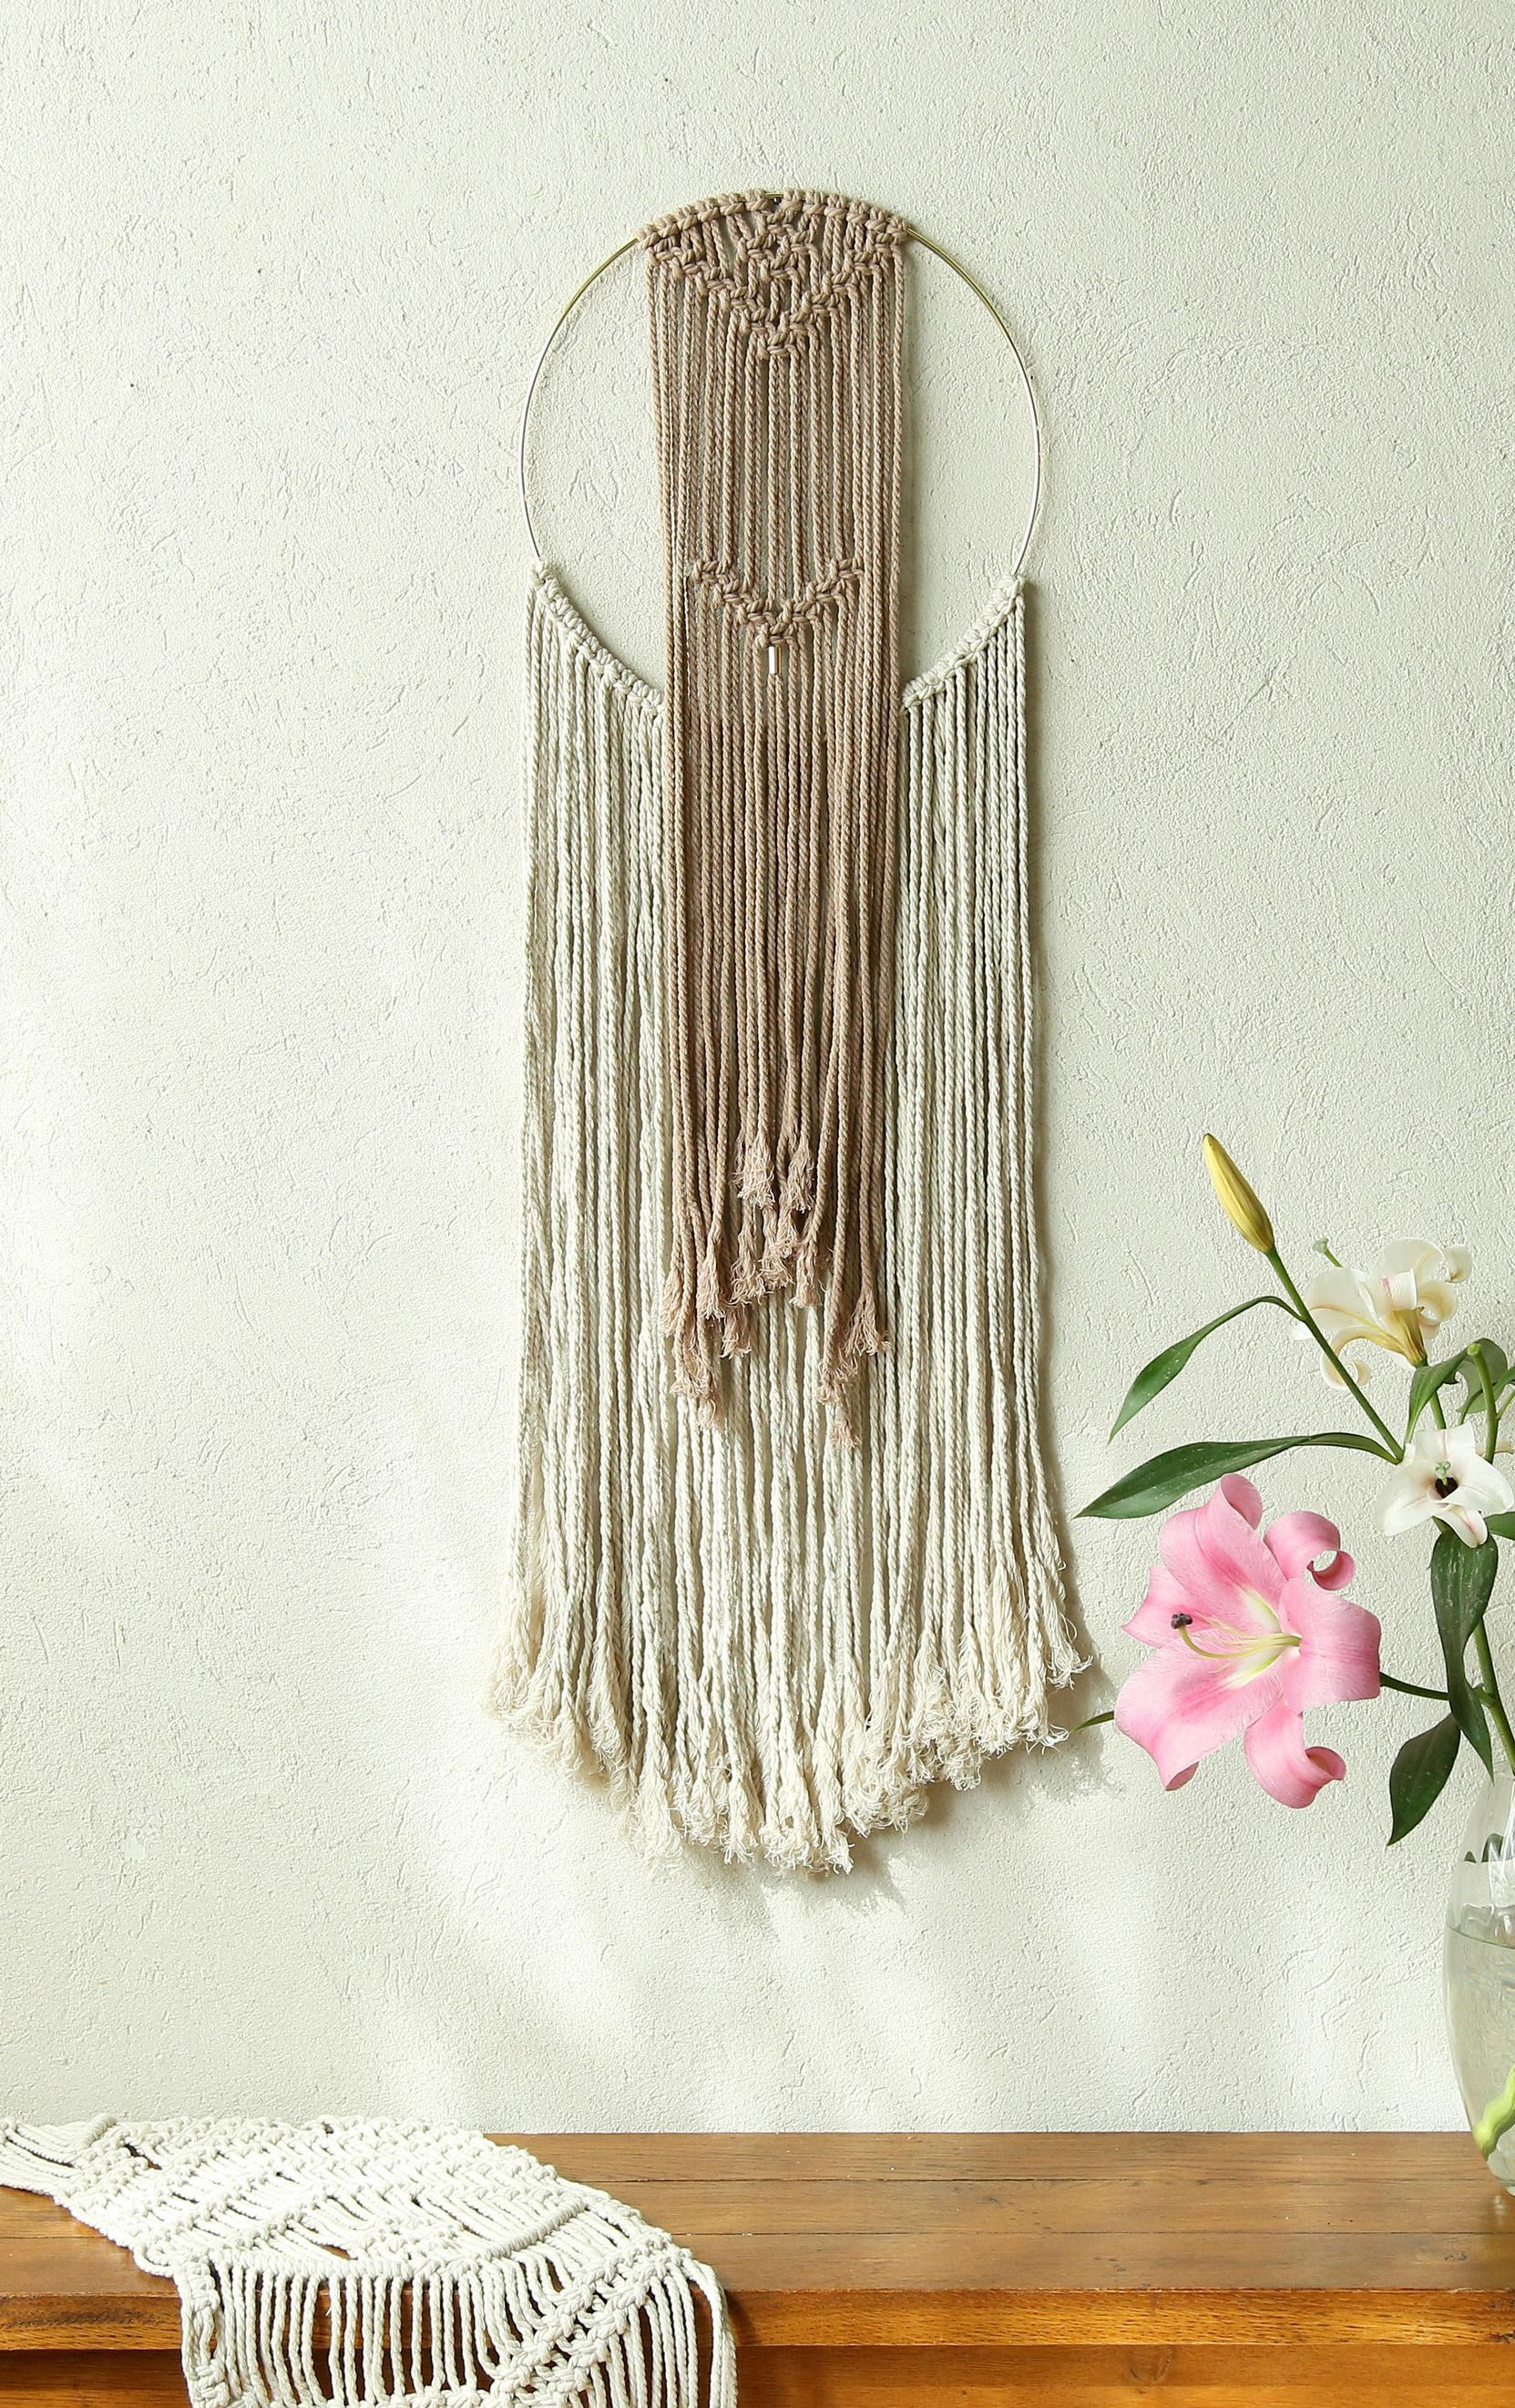 Gold Ring Wall Decor Off White And Pink Wall Art Macrame Wall